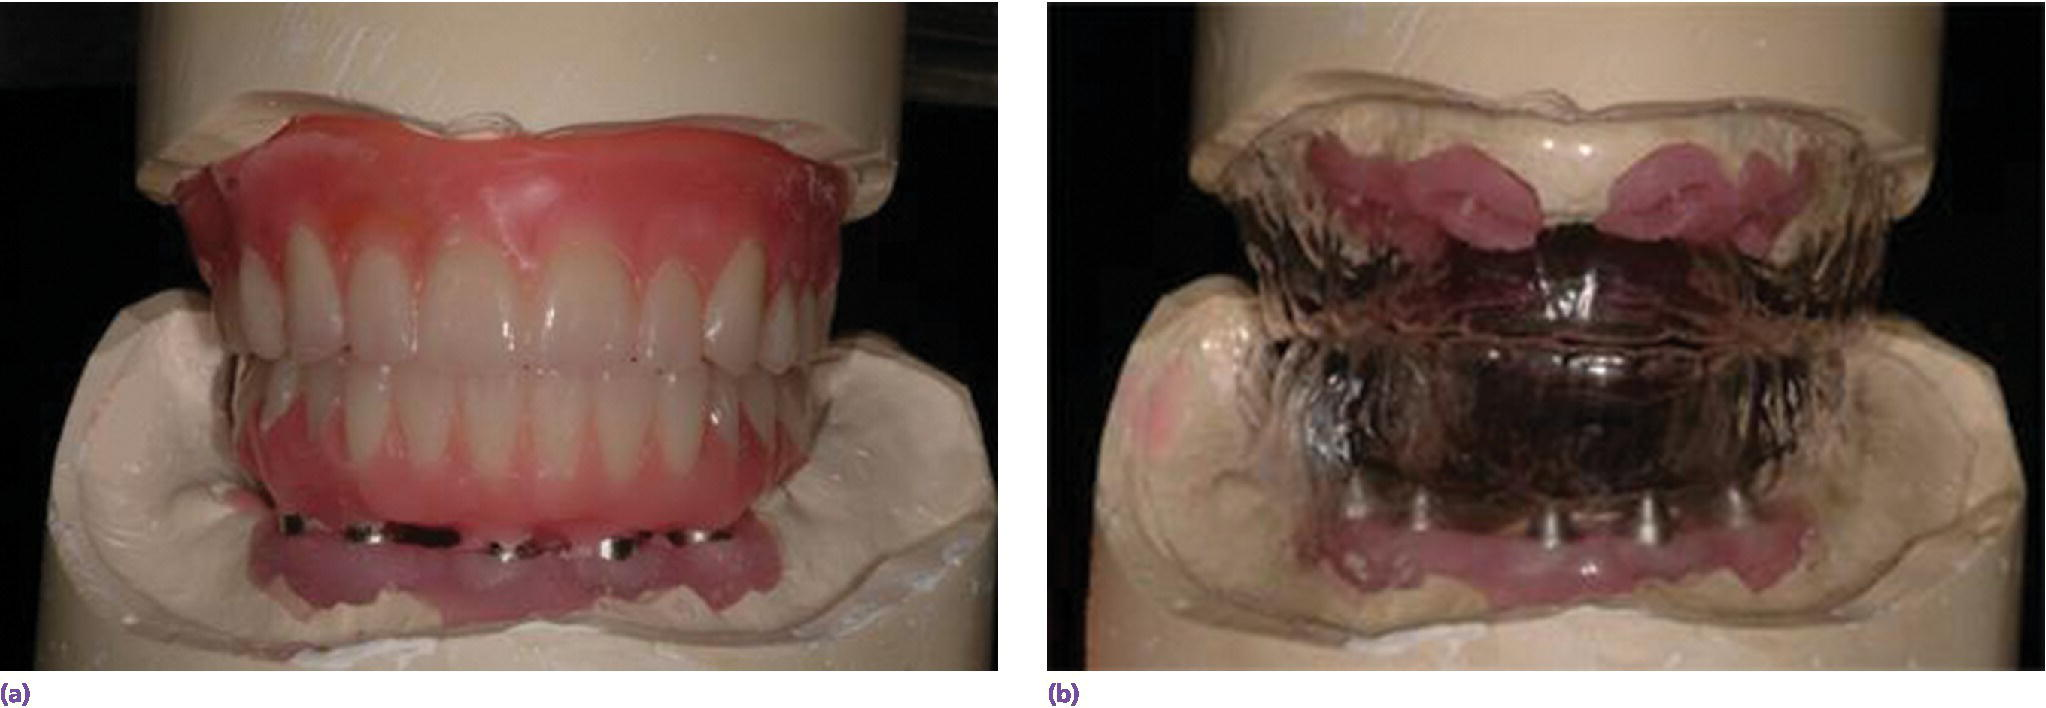 Photos of analog wax-up (top left), and wax-up permits spatial considerations for planning and fabricating maxillary and mandibular prostheses (top right).